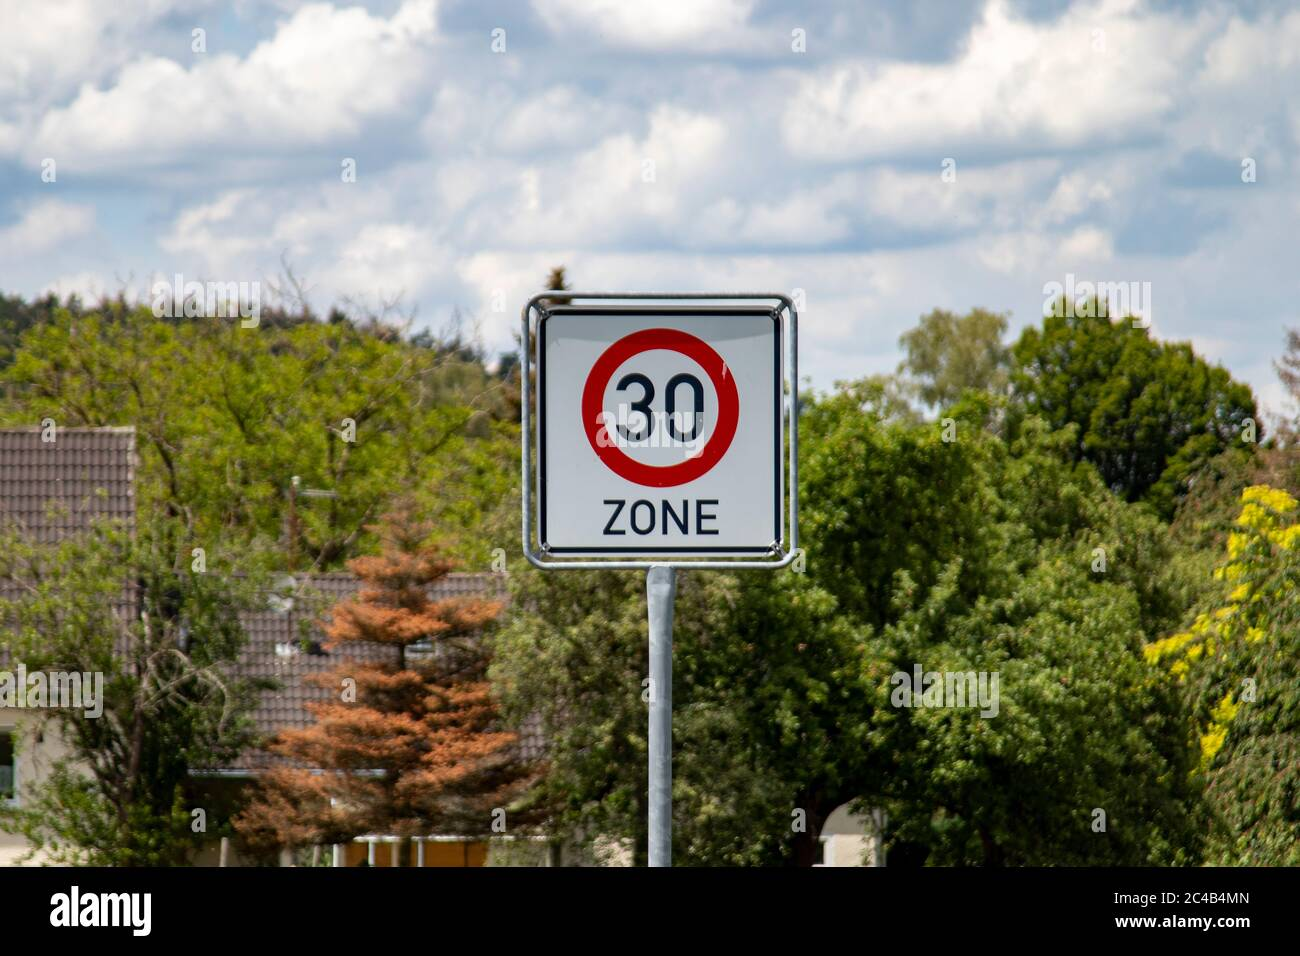 German road sign zone 30 km / h in a rural area, outdoors Stock Photo